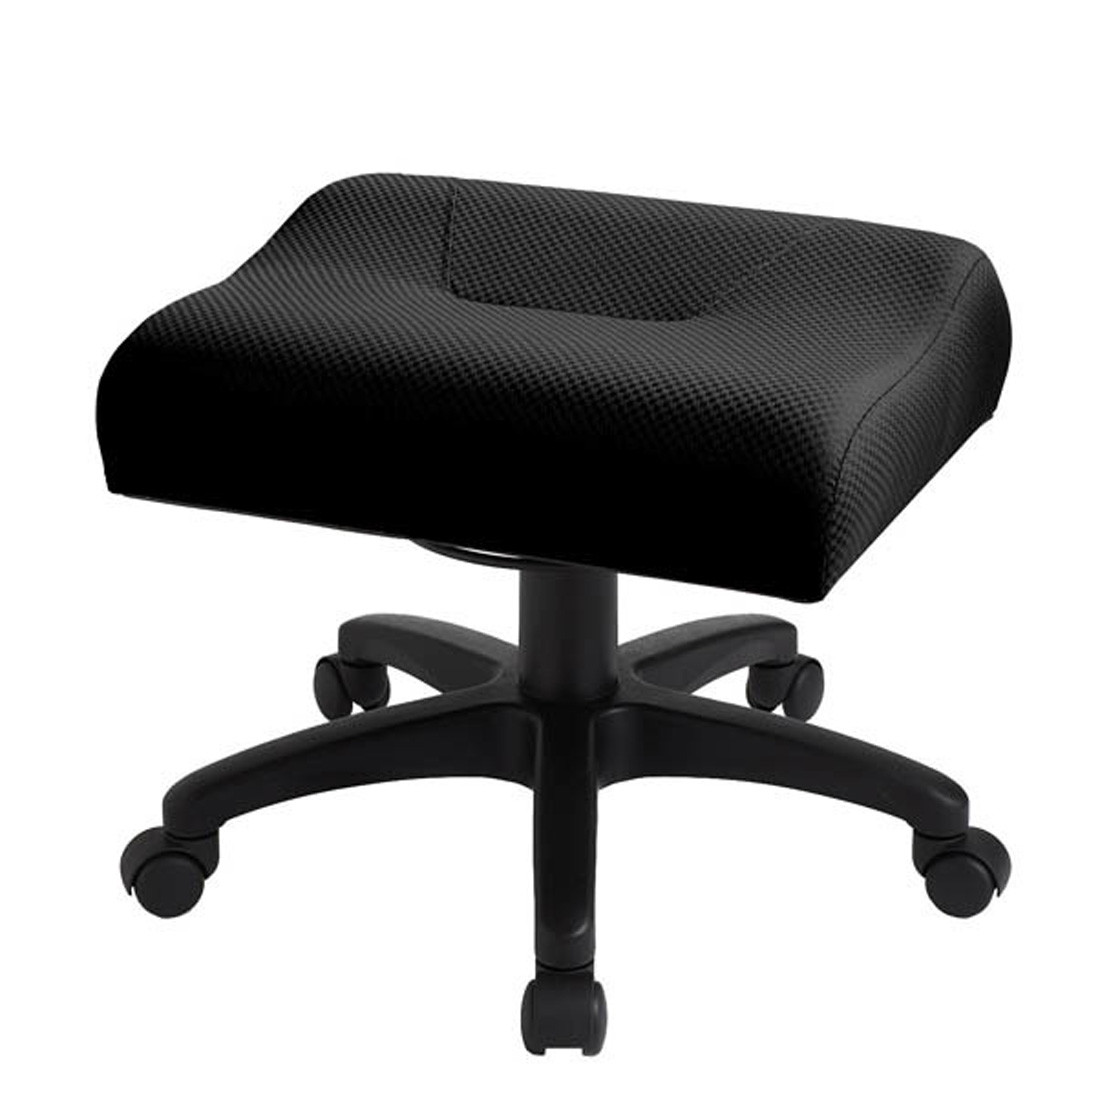 Ergocentric Adjustable Height Leg Rest Padded Foot Stool